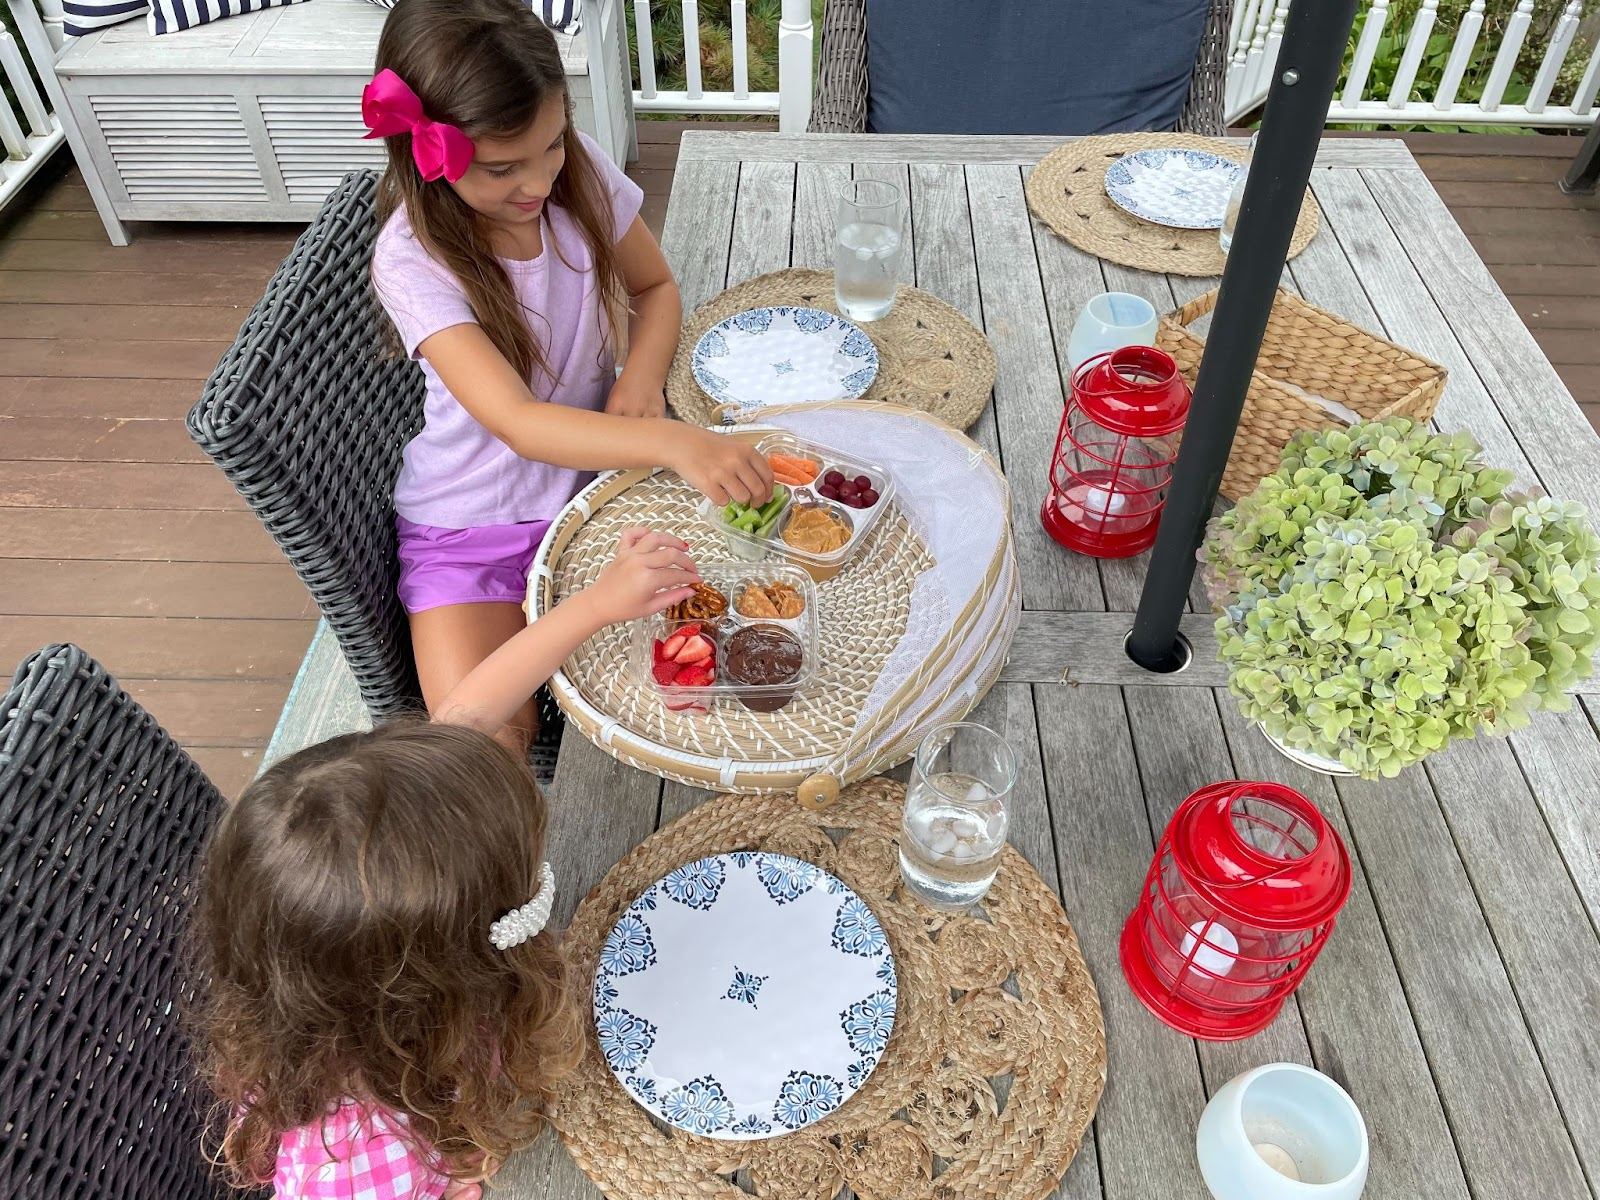 Little girls enjoying snacks on the deck in summer protected by Modern Pest